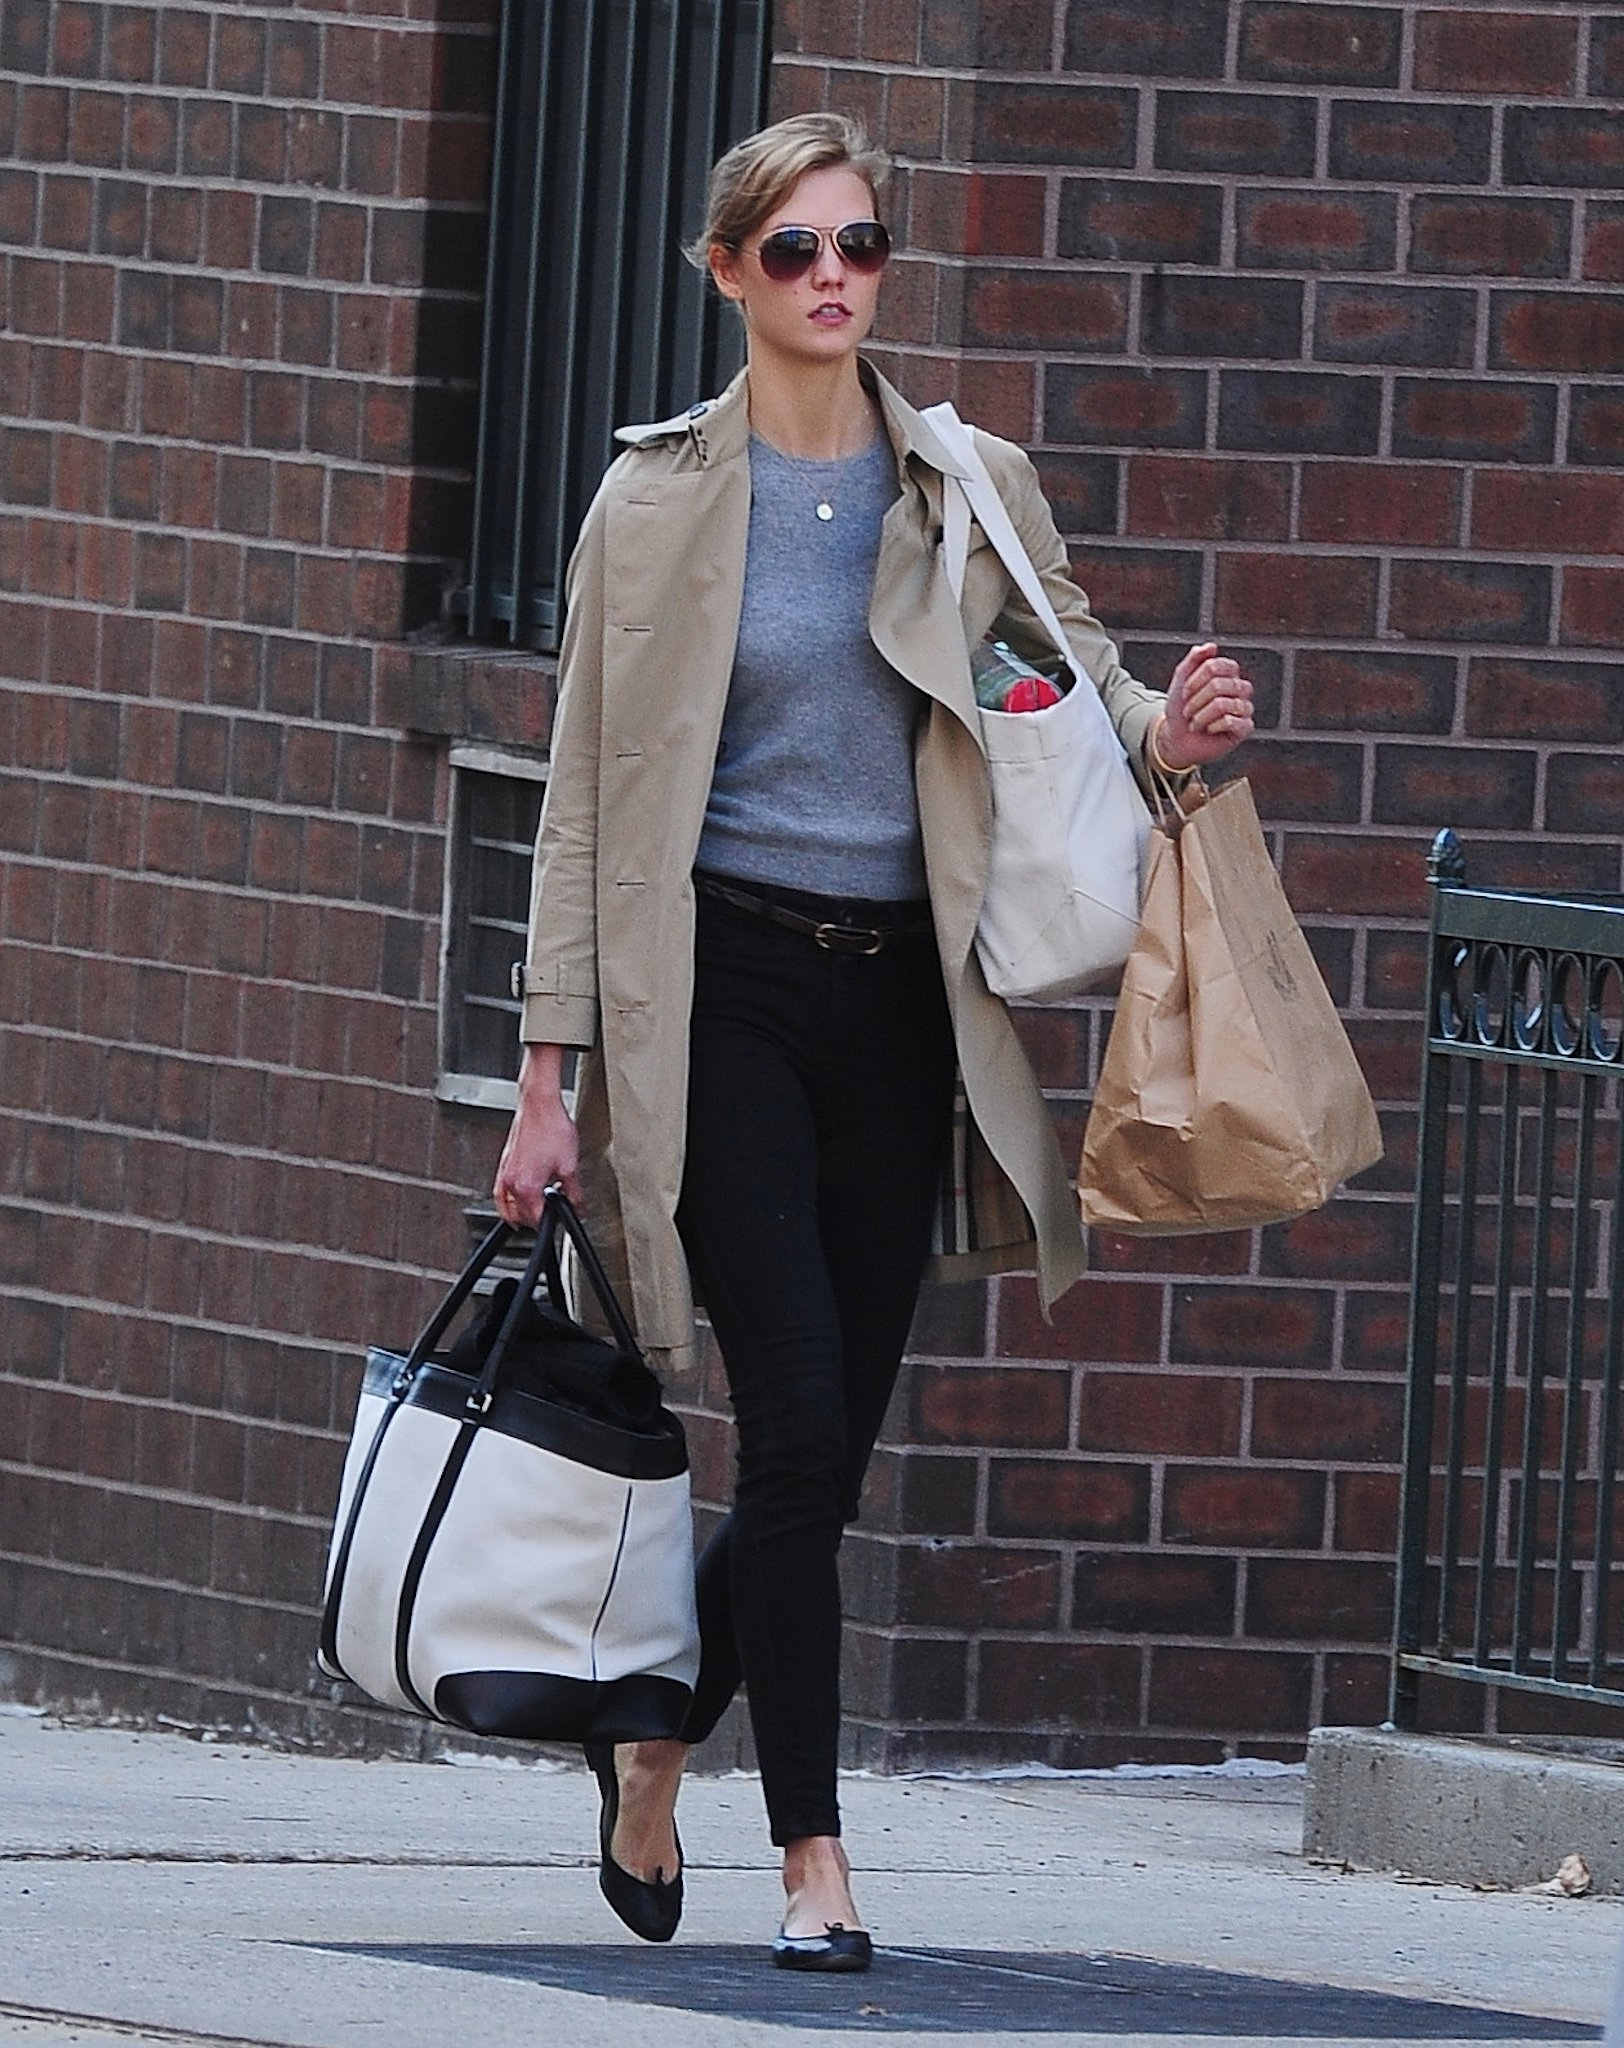 Karlie Kloss in Cropped Jeans and Ballet Flats (Again)